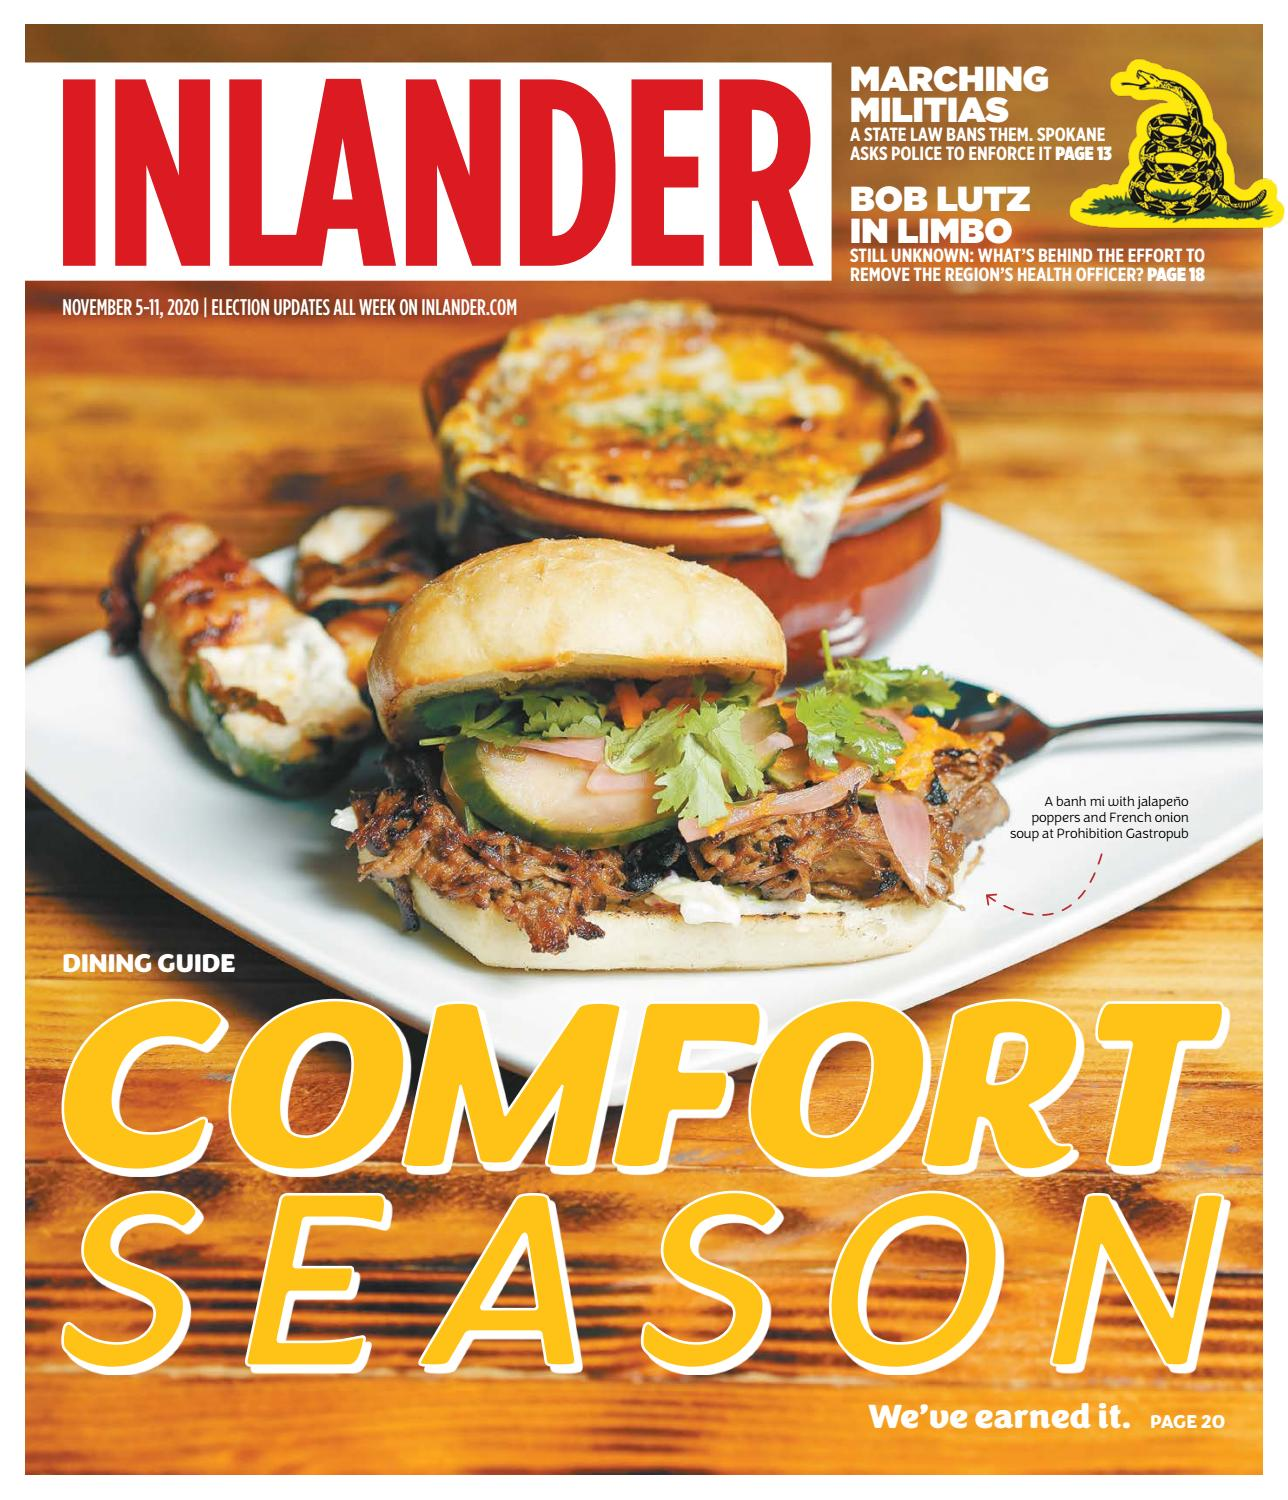 Apex Energy Solutions Sullivans Christmas Party 2020 Inlander 11/05/2020 by The Inlander   issuu